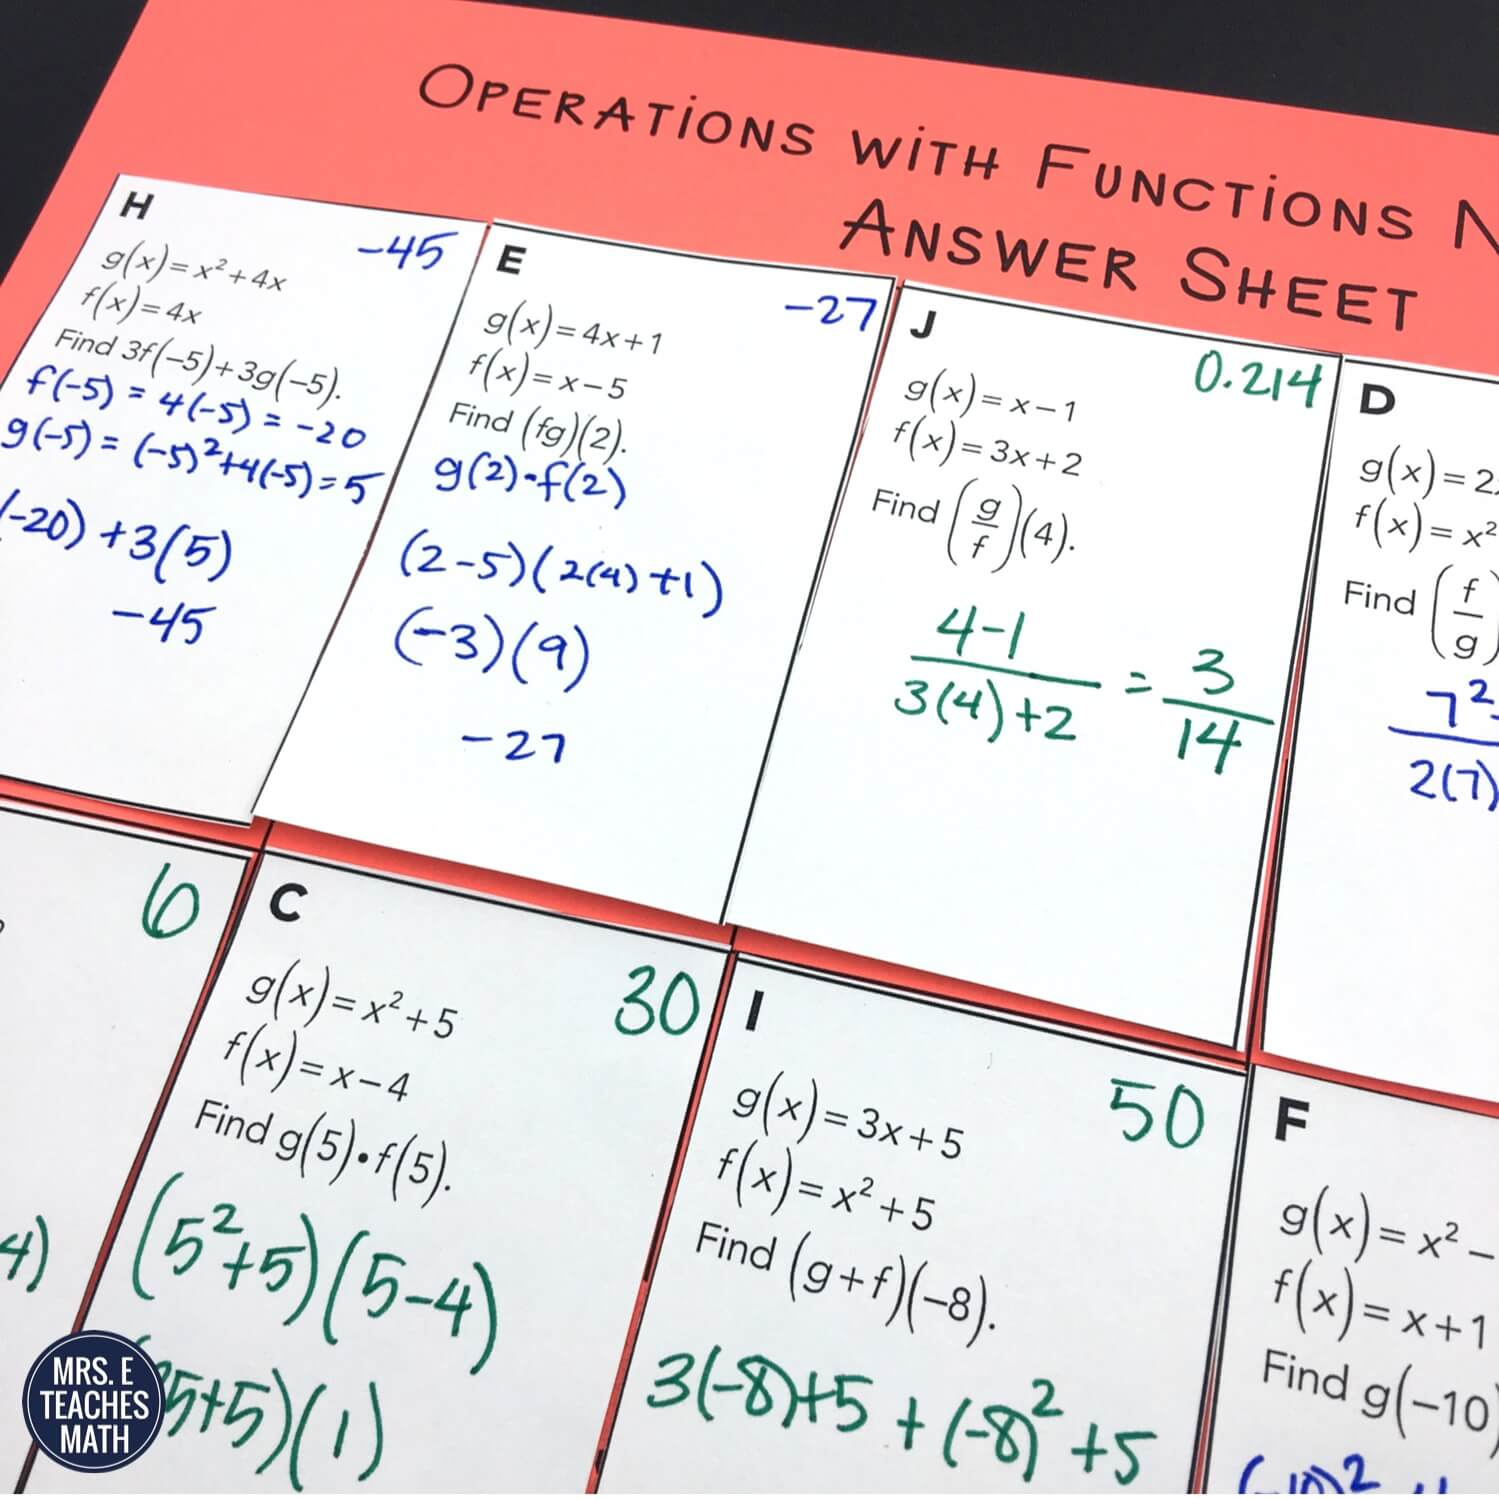 Algebra 2 Function Notation And Operations Worksheet